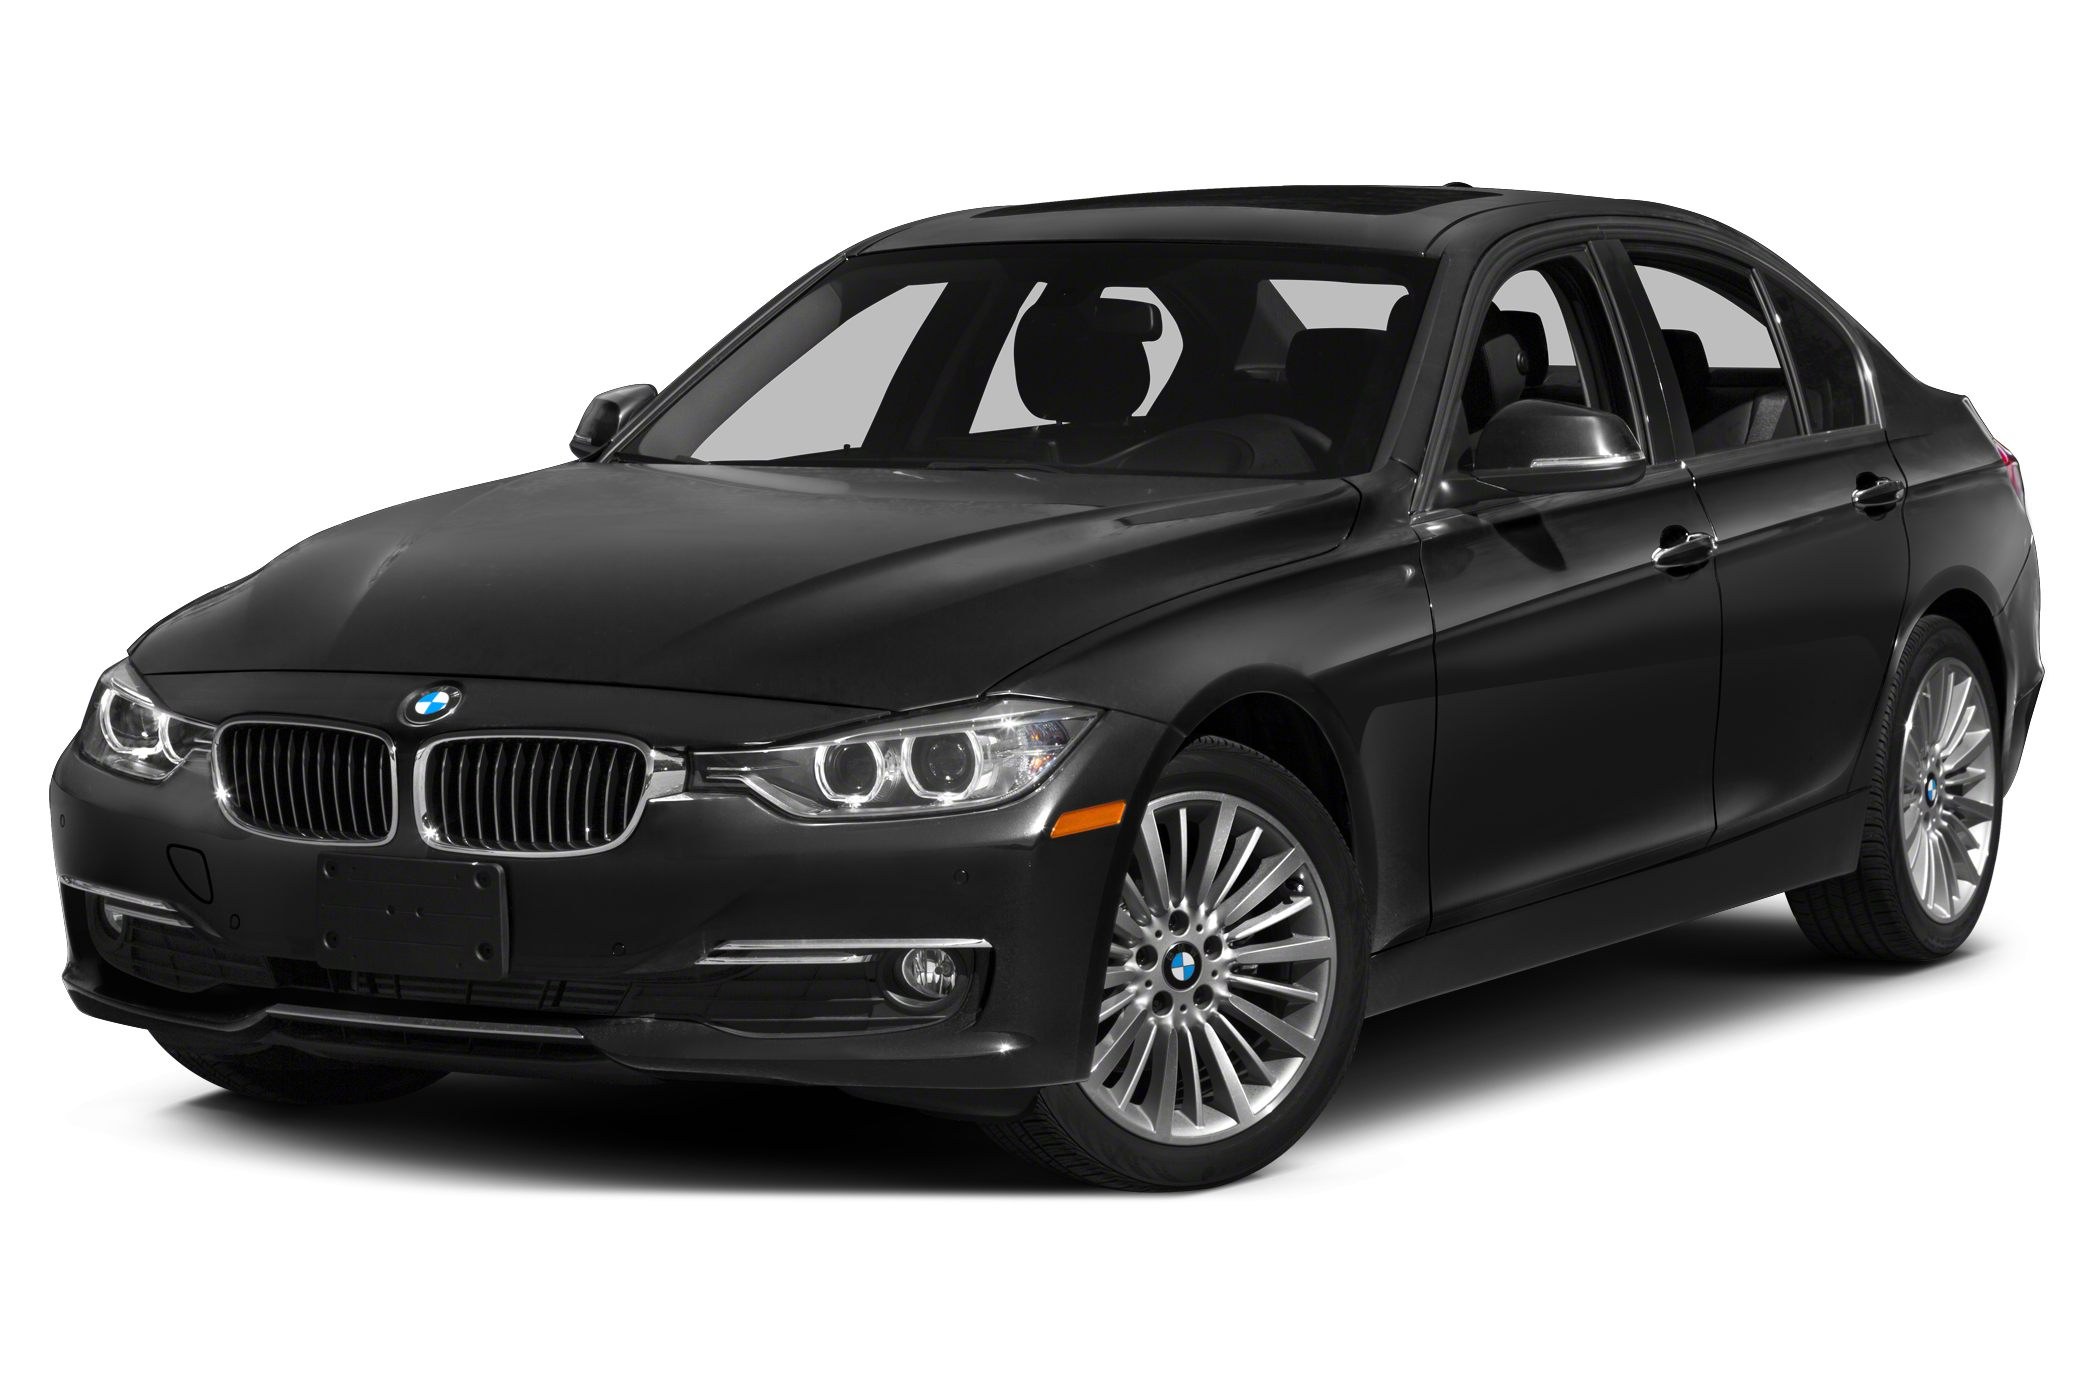 2014 BMW 3 Series 328d Snatch a score on this 2014 BMW 3 Series 328d before someone else takes it